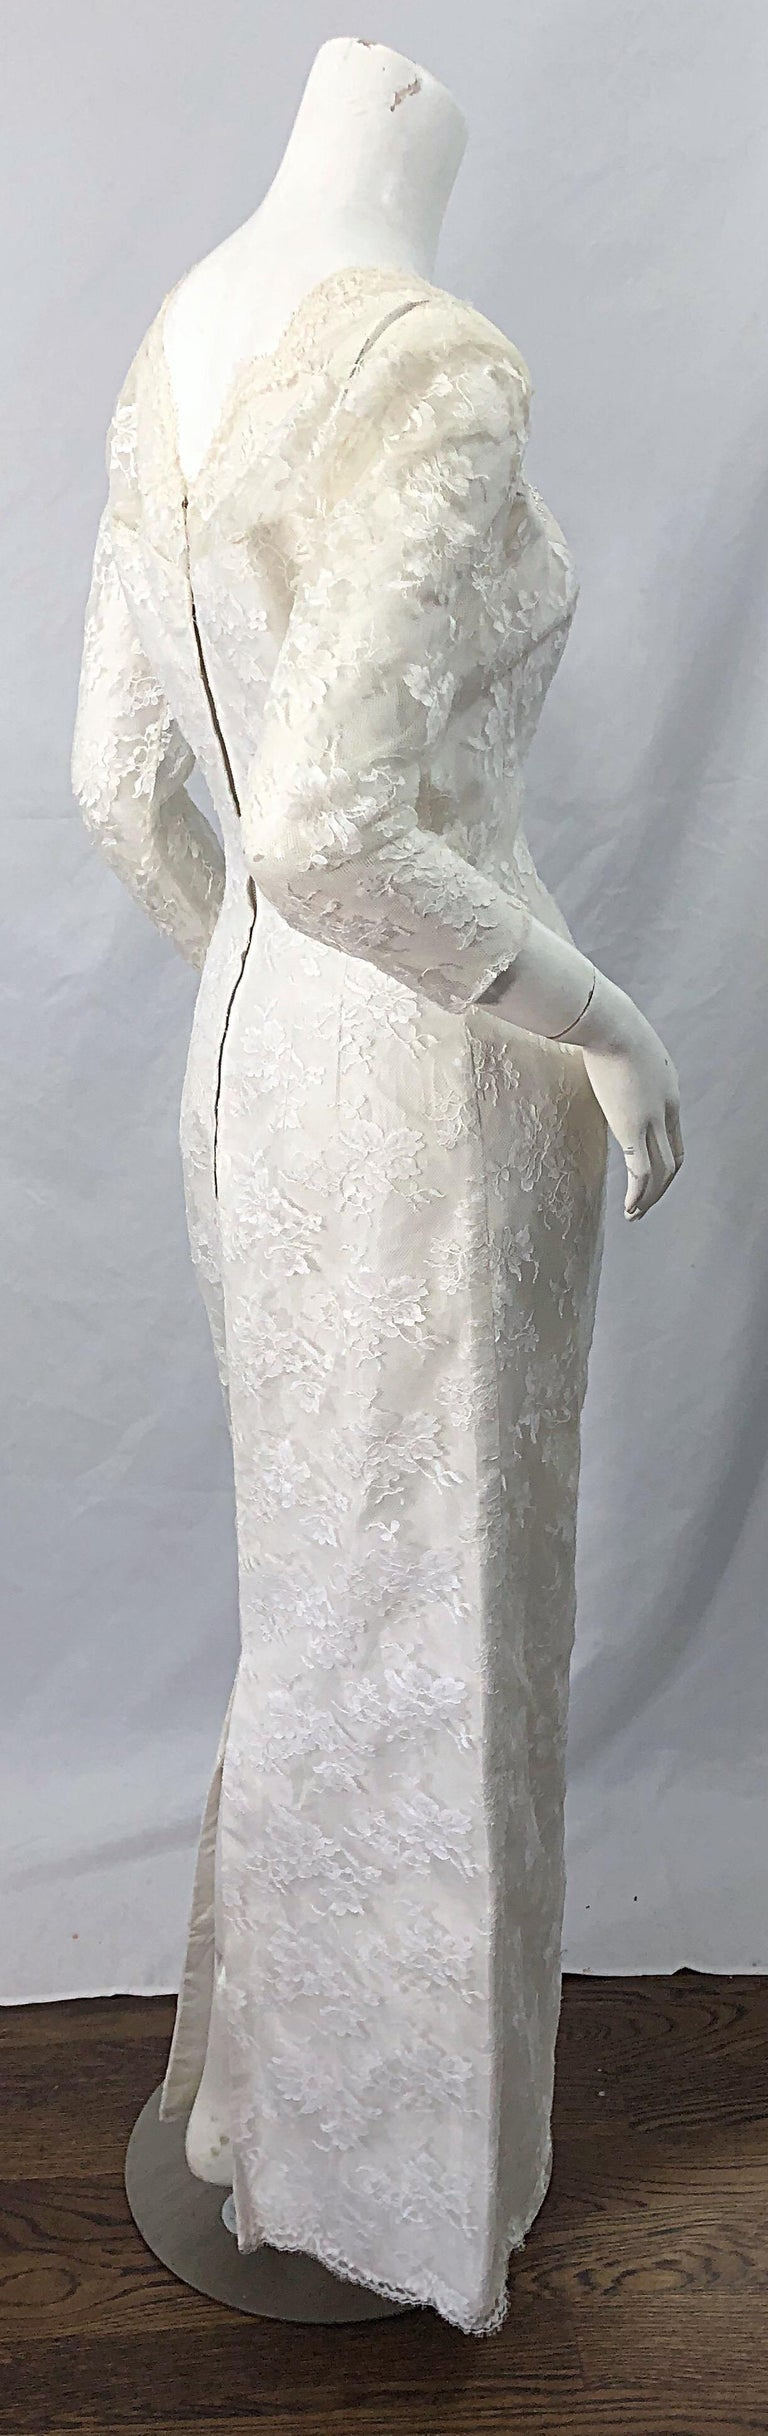 Women's 1960s An Original By Constantino White Beaded Couture Vintage Wedding Dress Gown For Sale